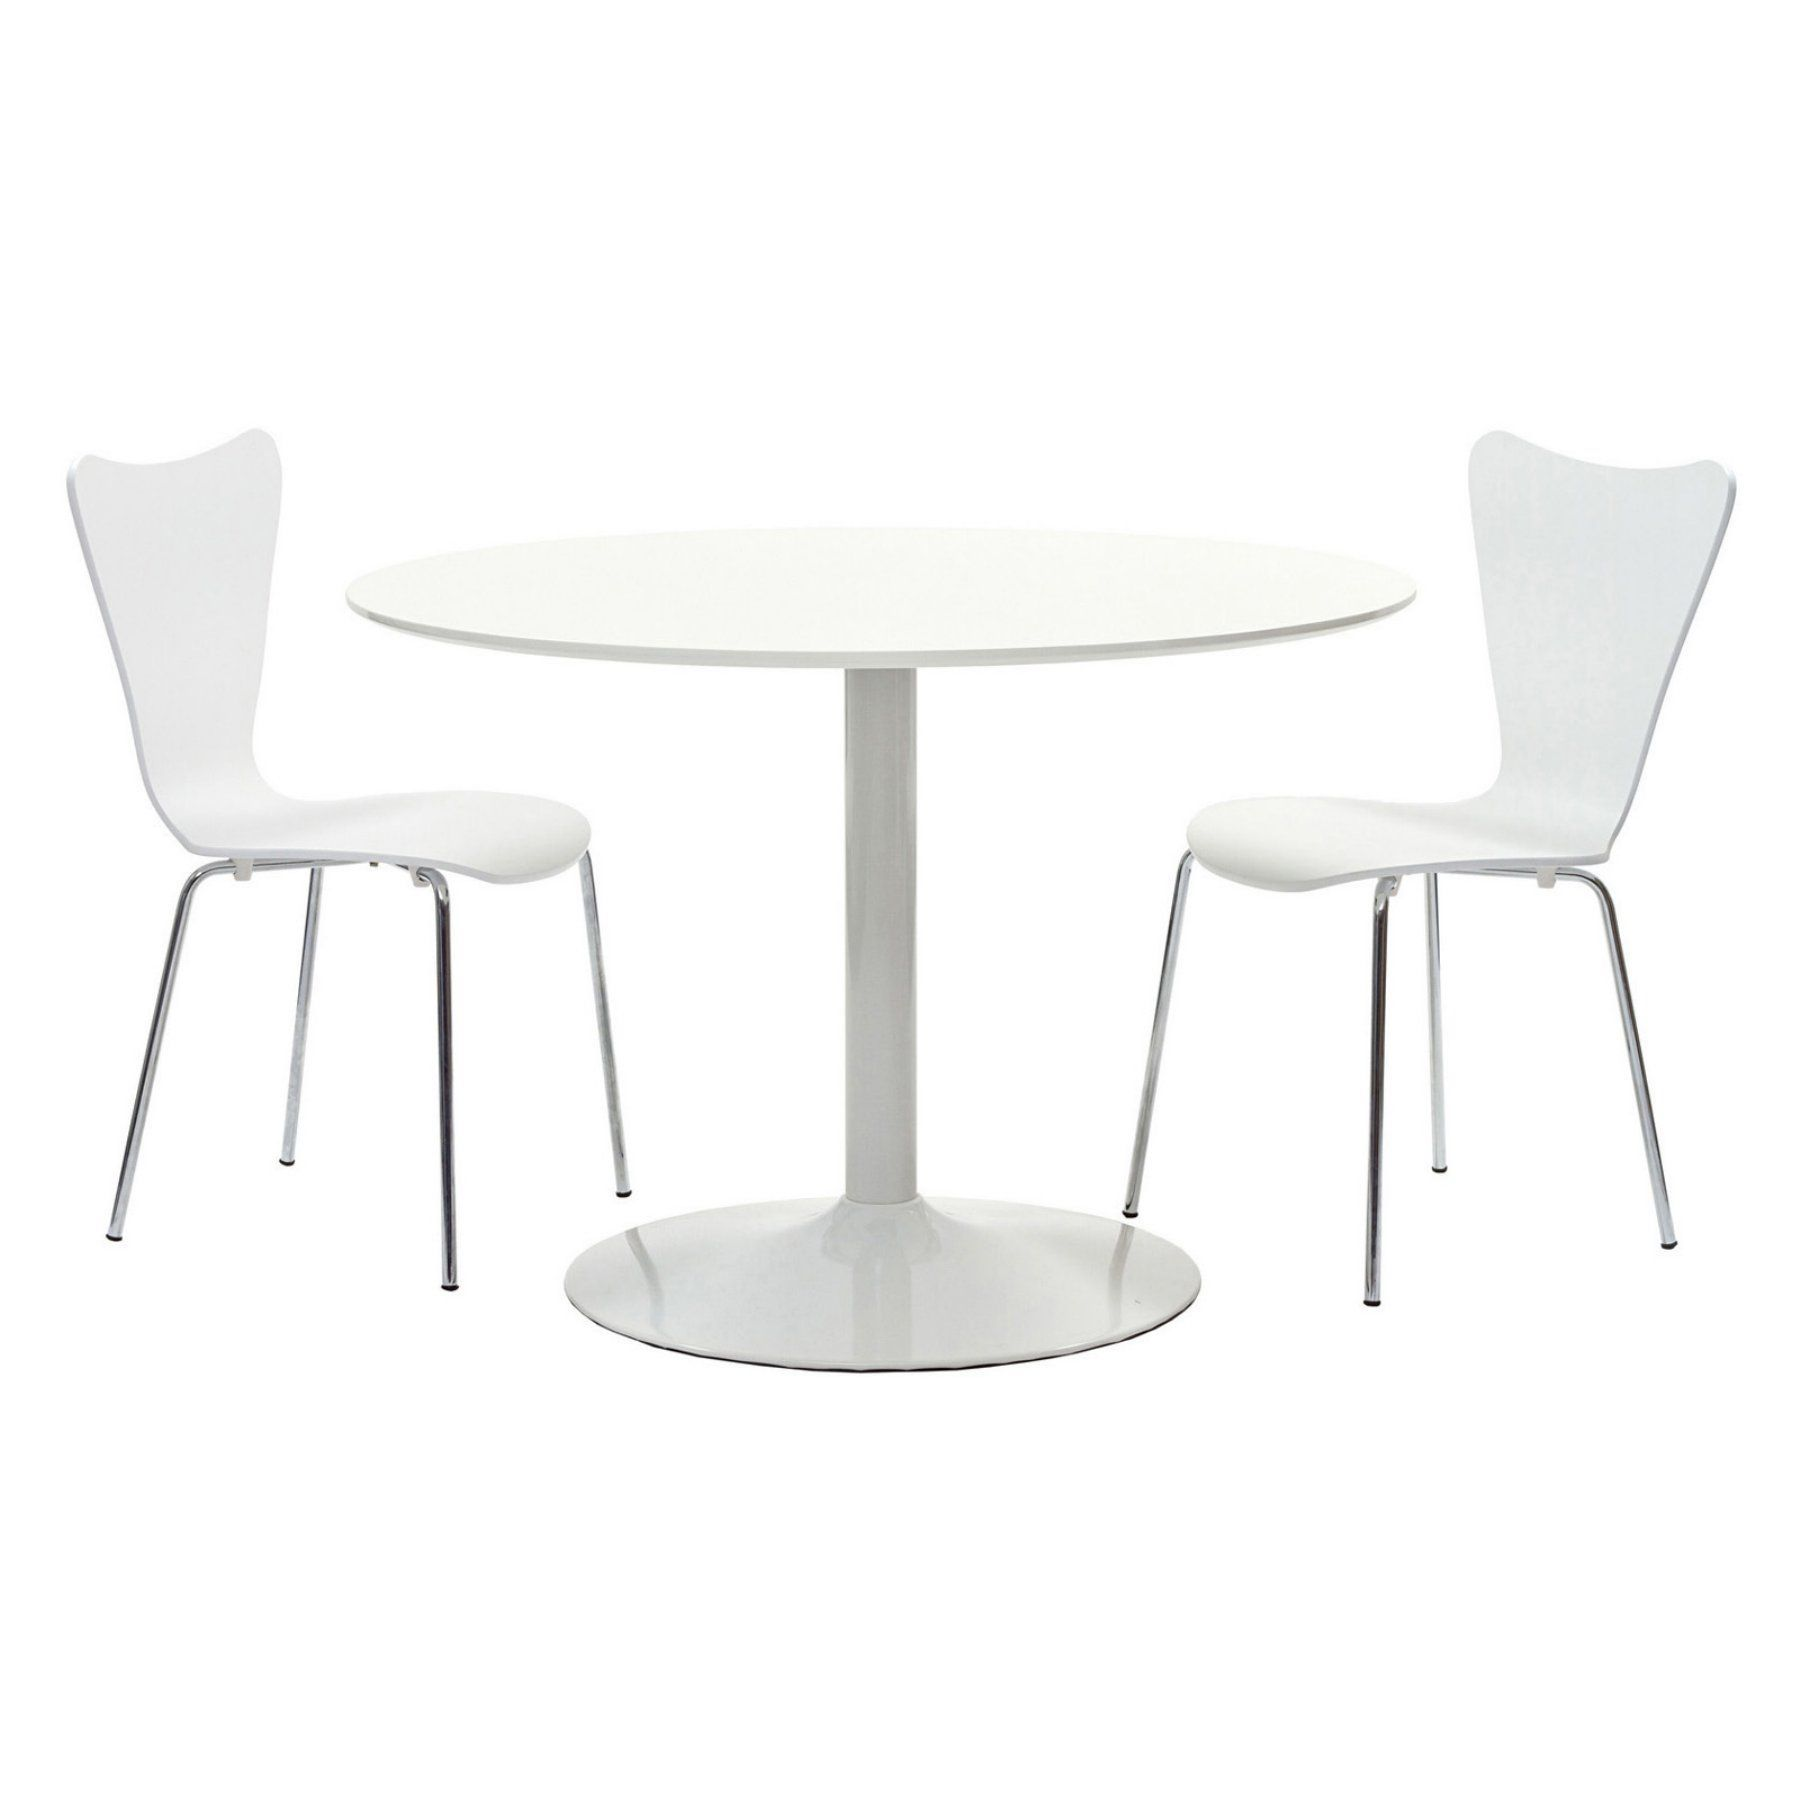 Modway revolve piece dining set with earnie chairs white eei